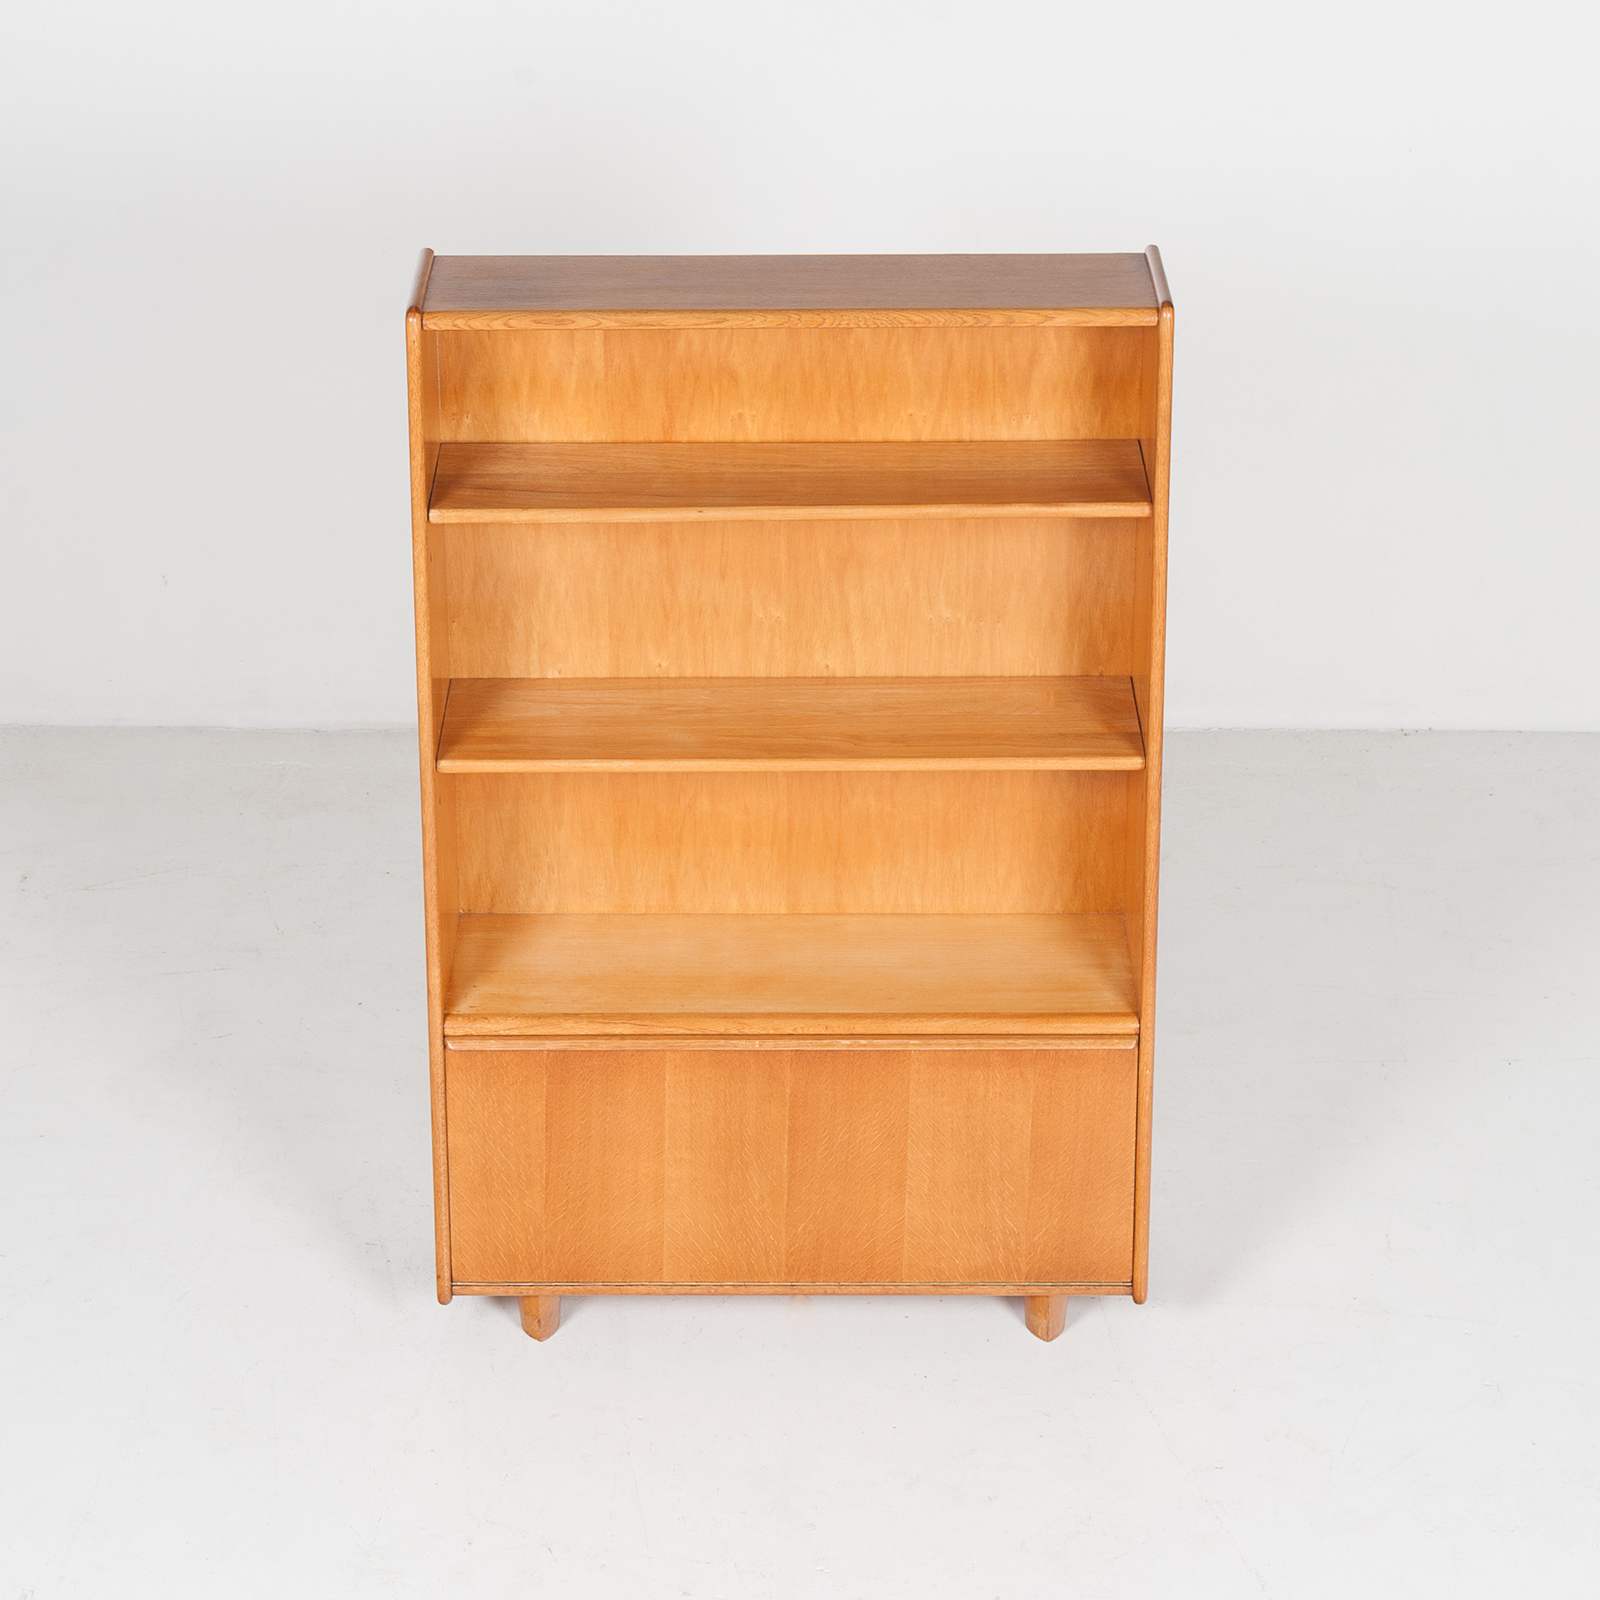 Model Be 03 Oak Series Bookcase By Cees Braakman For Pastoe, 1950s, The Netherlands 33